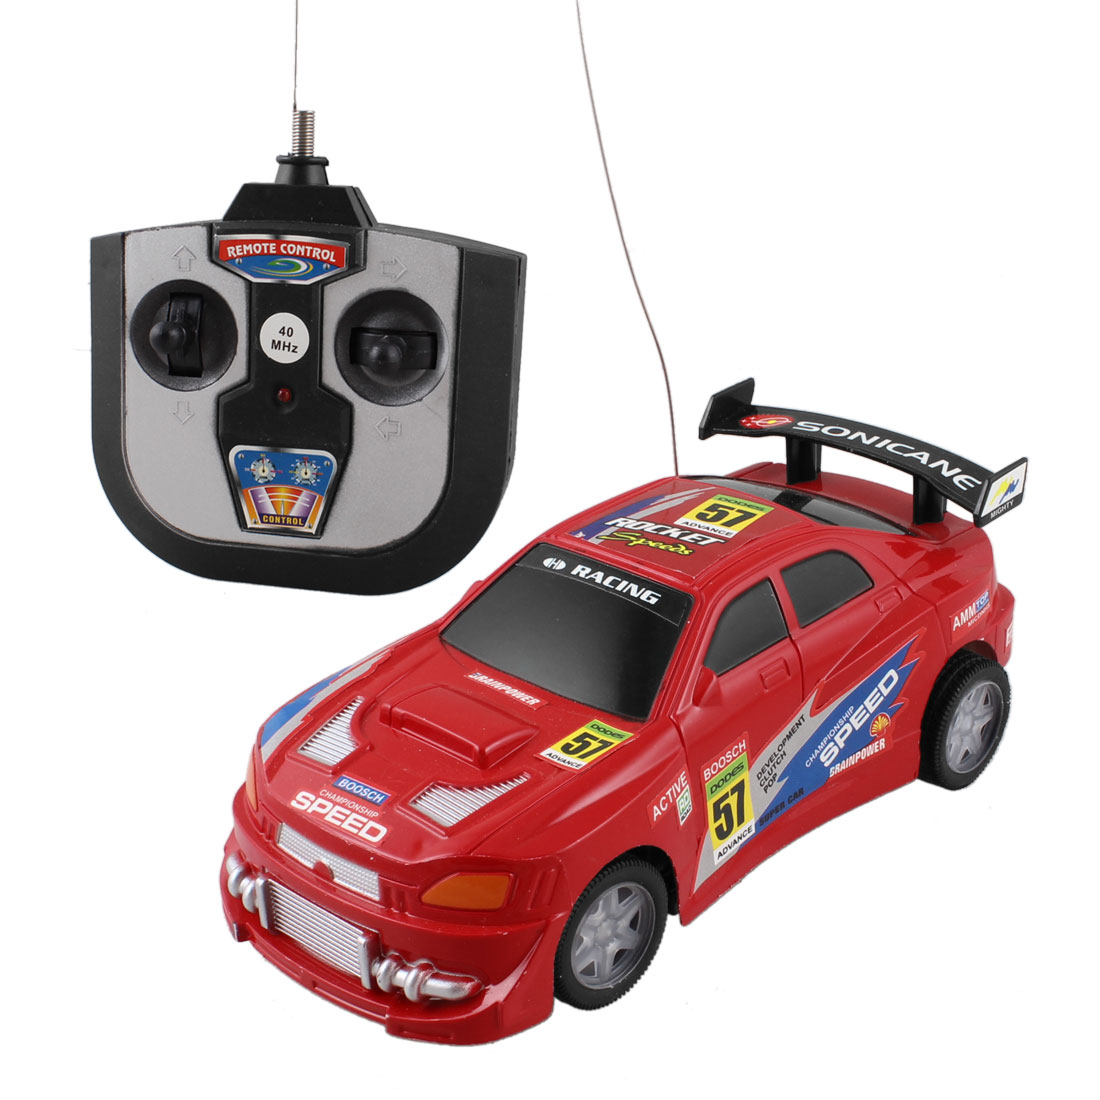 Remote Control Manipulated Red Radio Car Toy Gift for Kids